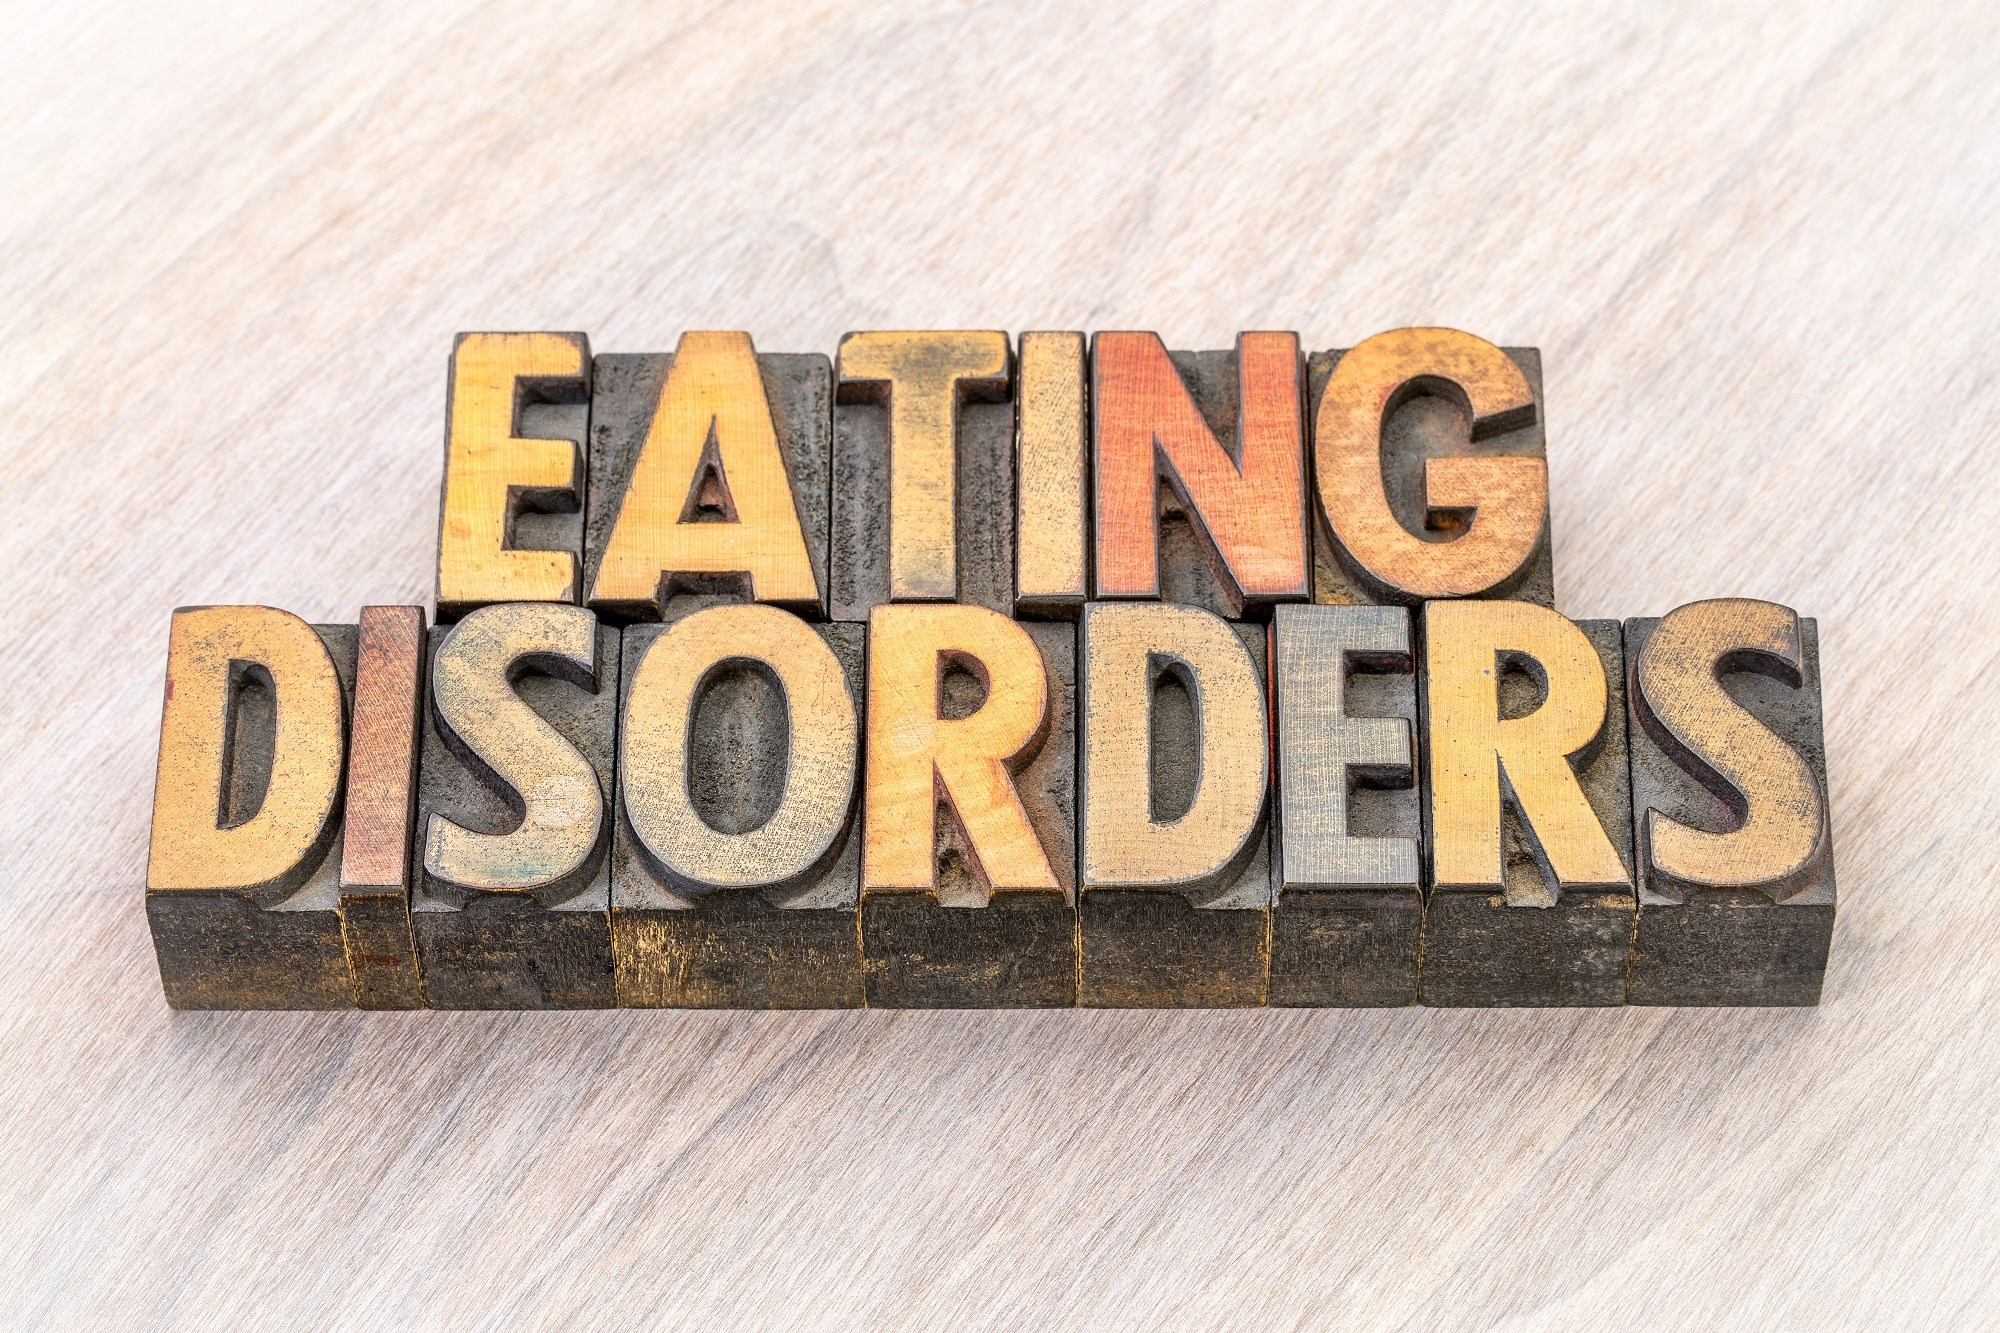 Eating Disorder Prevalence in Children Age 9 to 10 Shows No Sex-Based Differences